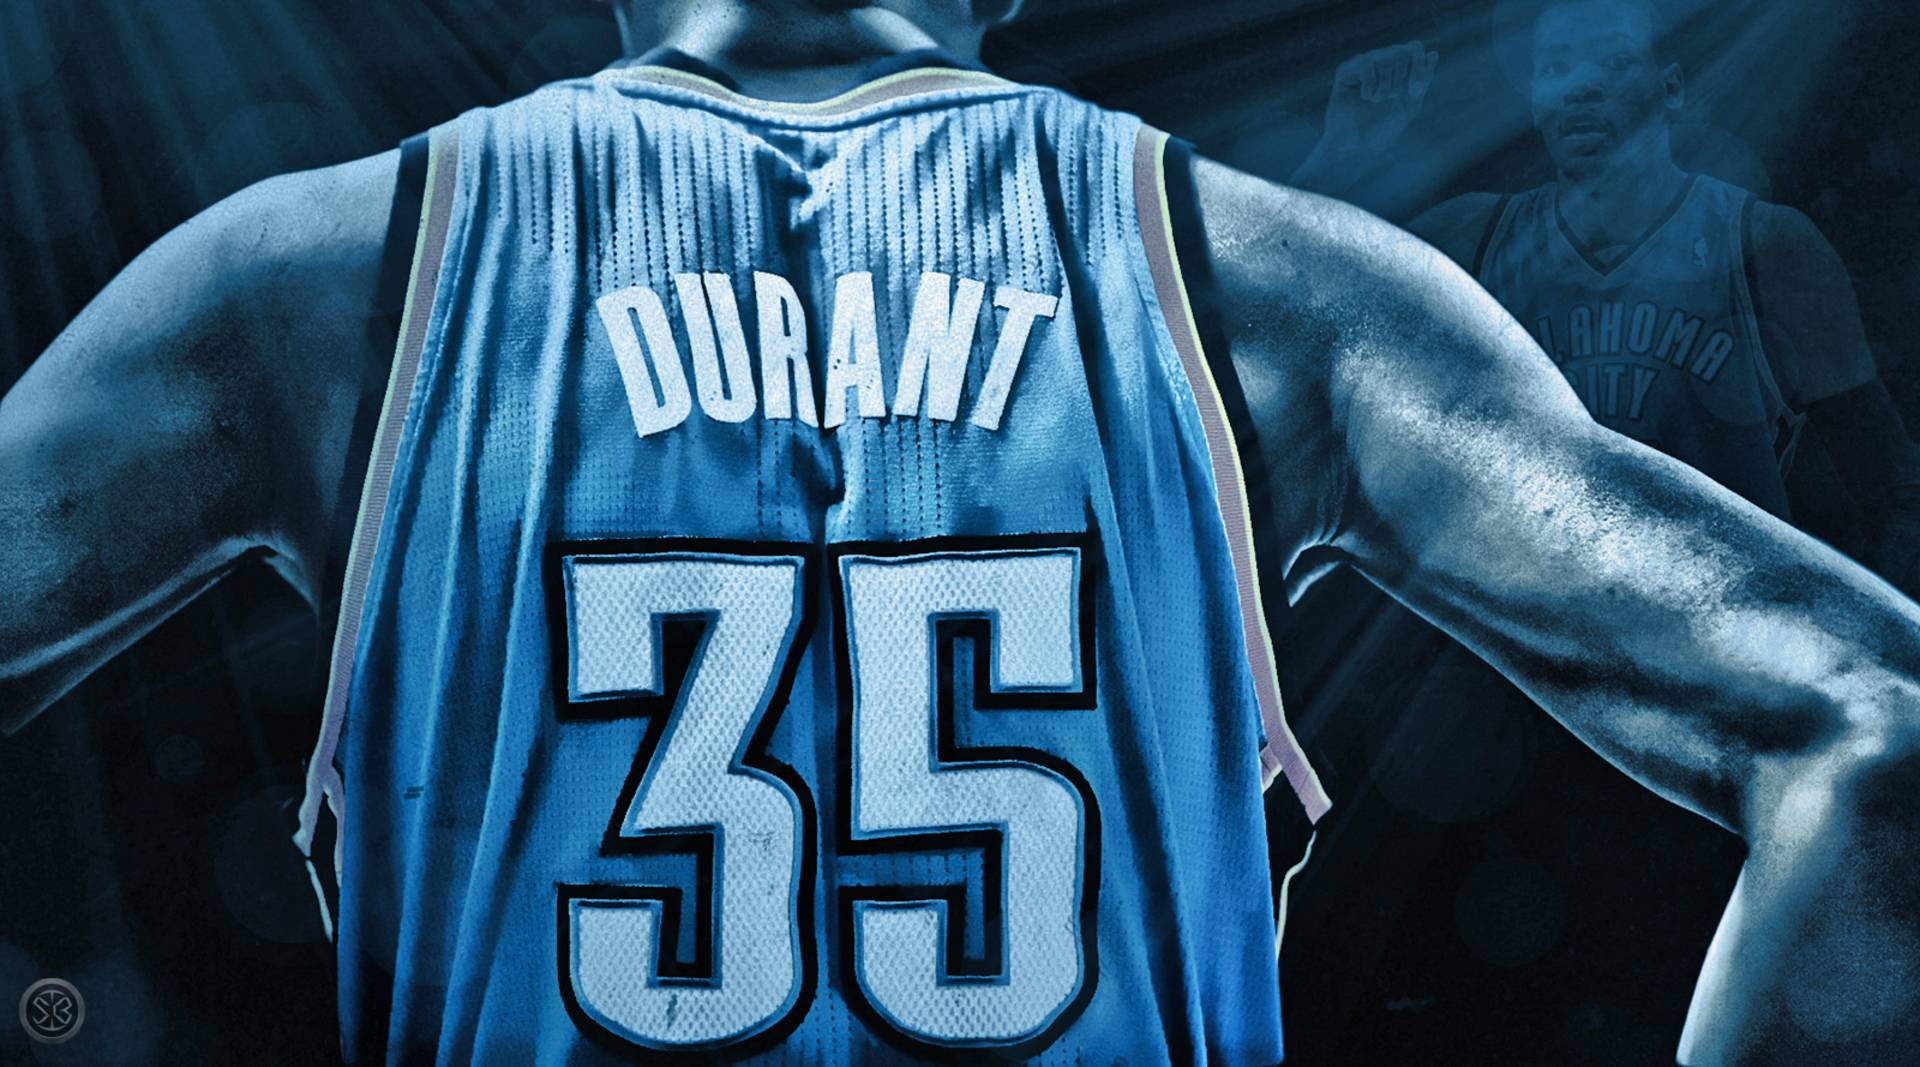 Kevin Durant Wallpaper and Background Image | 1920x1067 | ID:697982 - Wallpaper Abyss